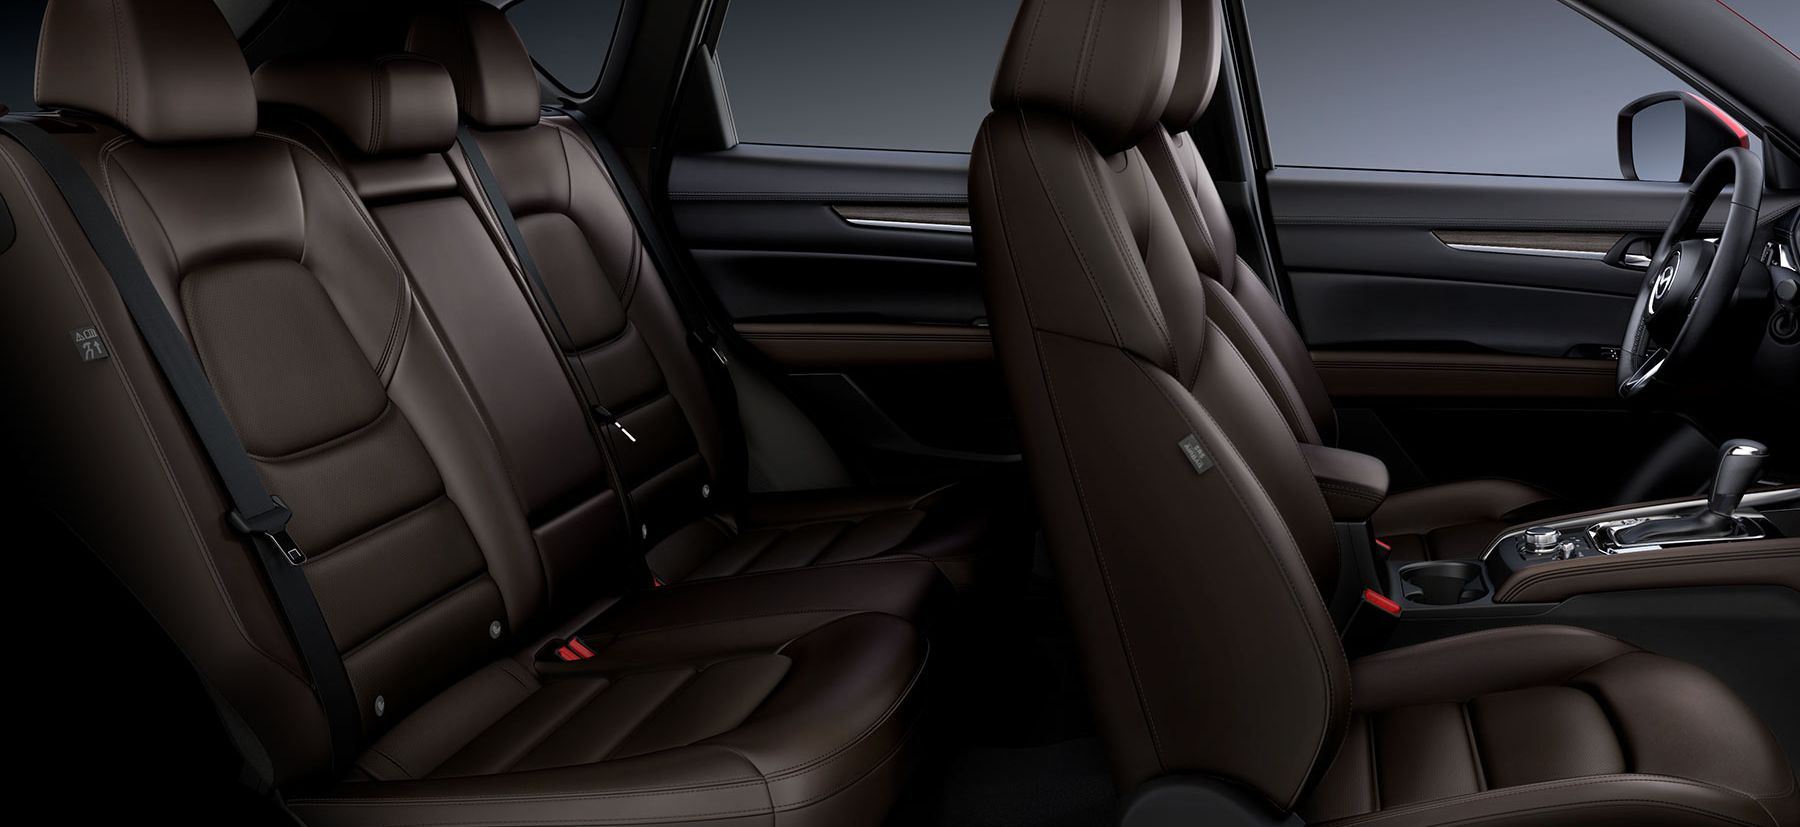 The Roomy Cabin of the 2019 Mazda CX-5